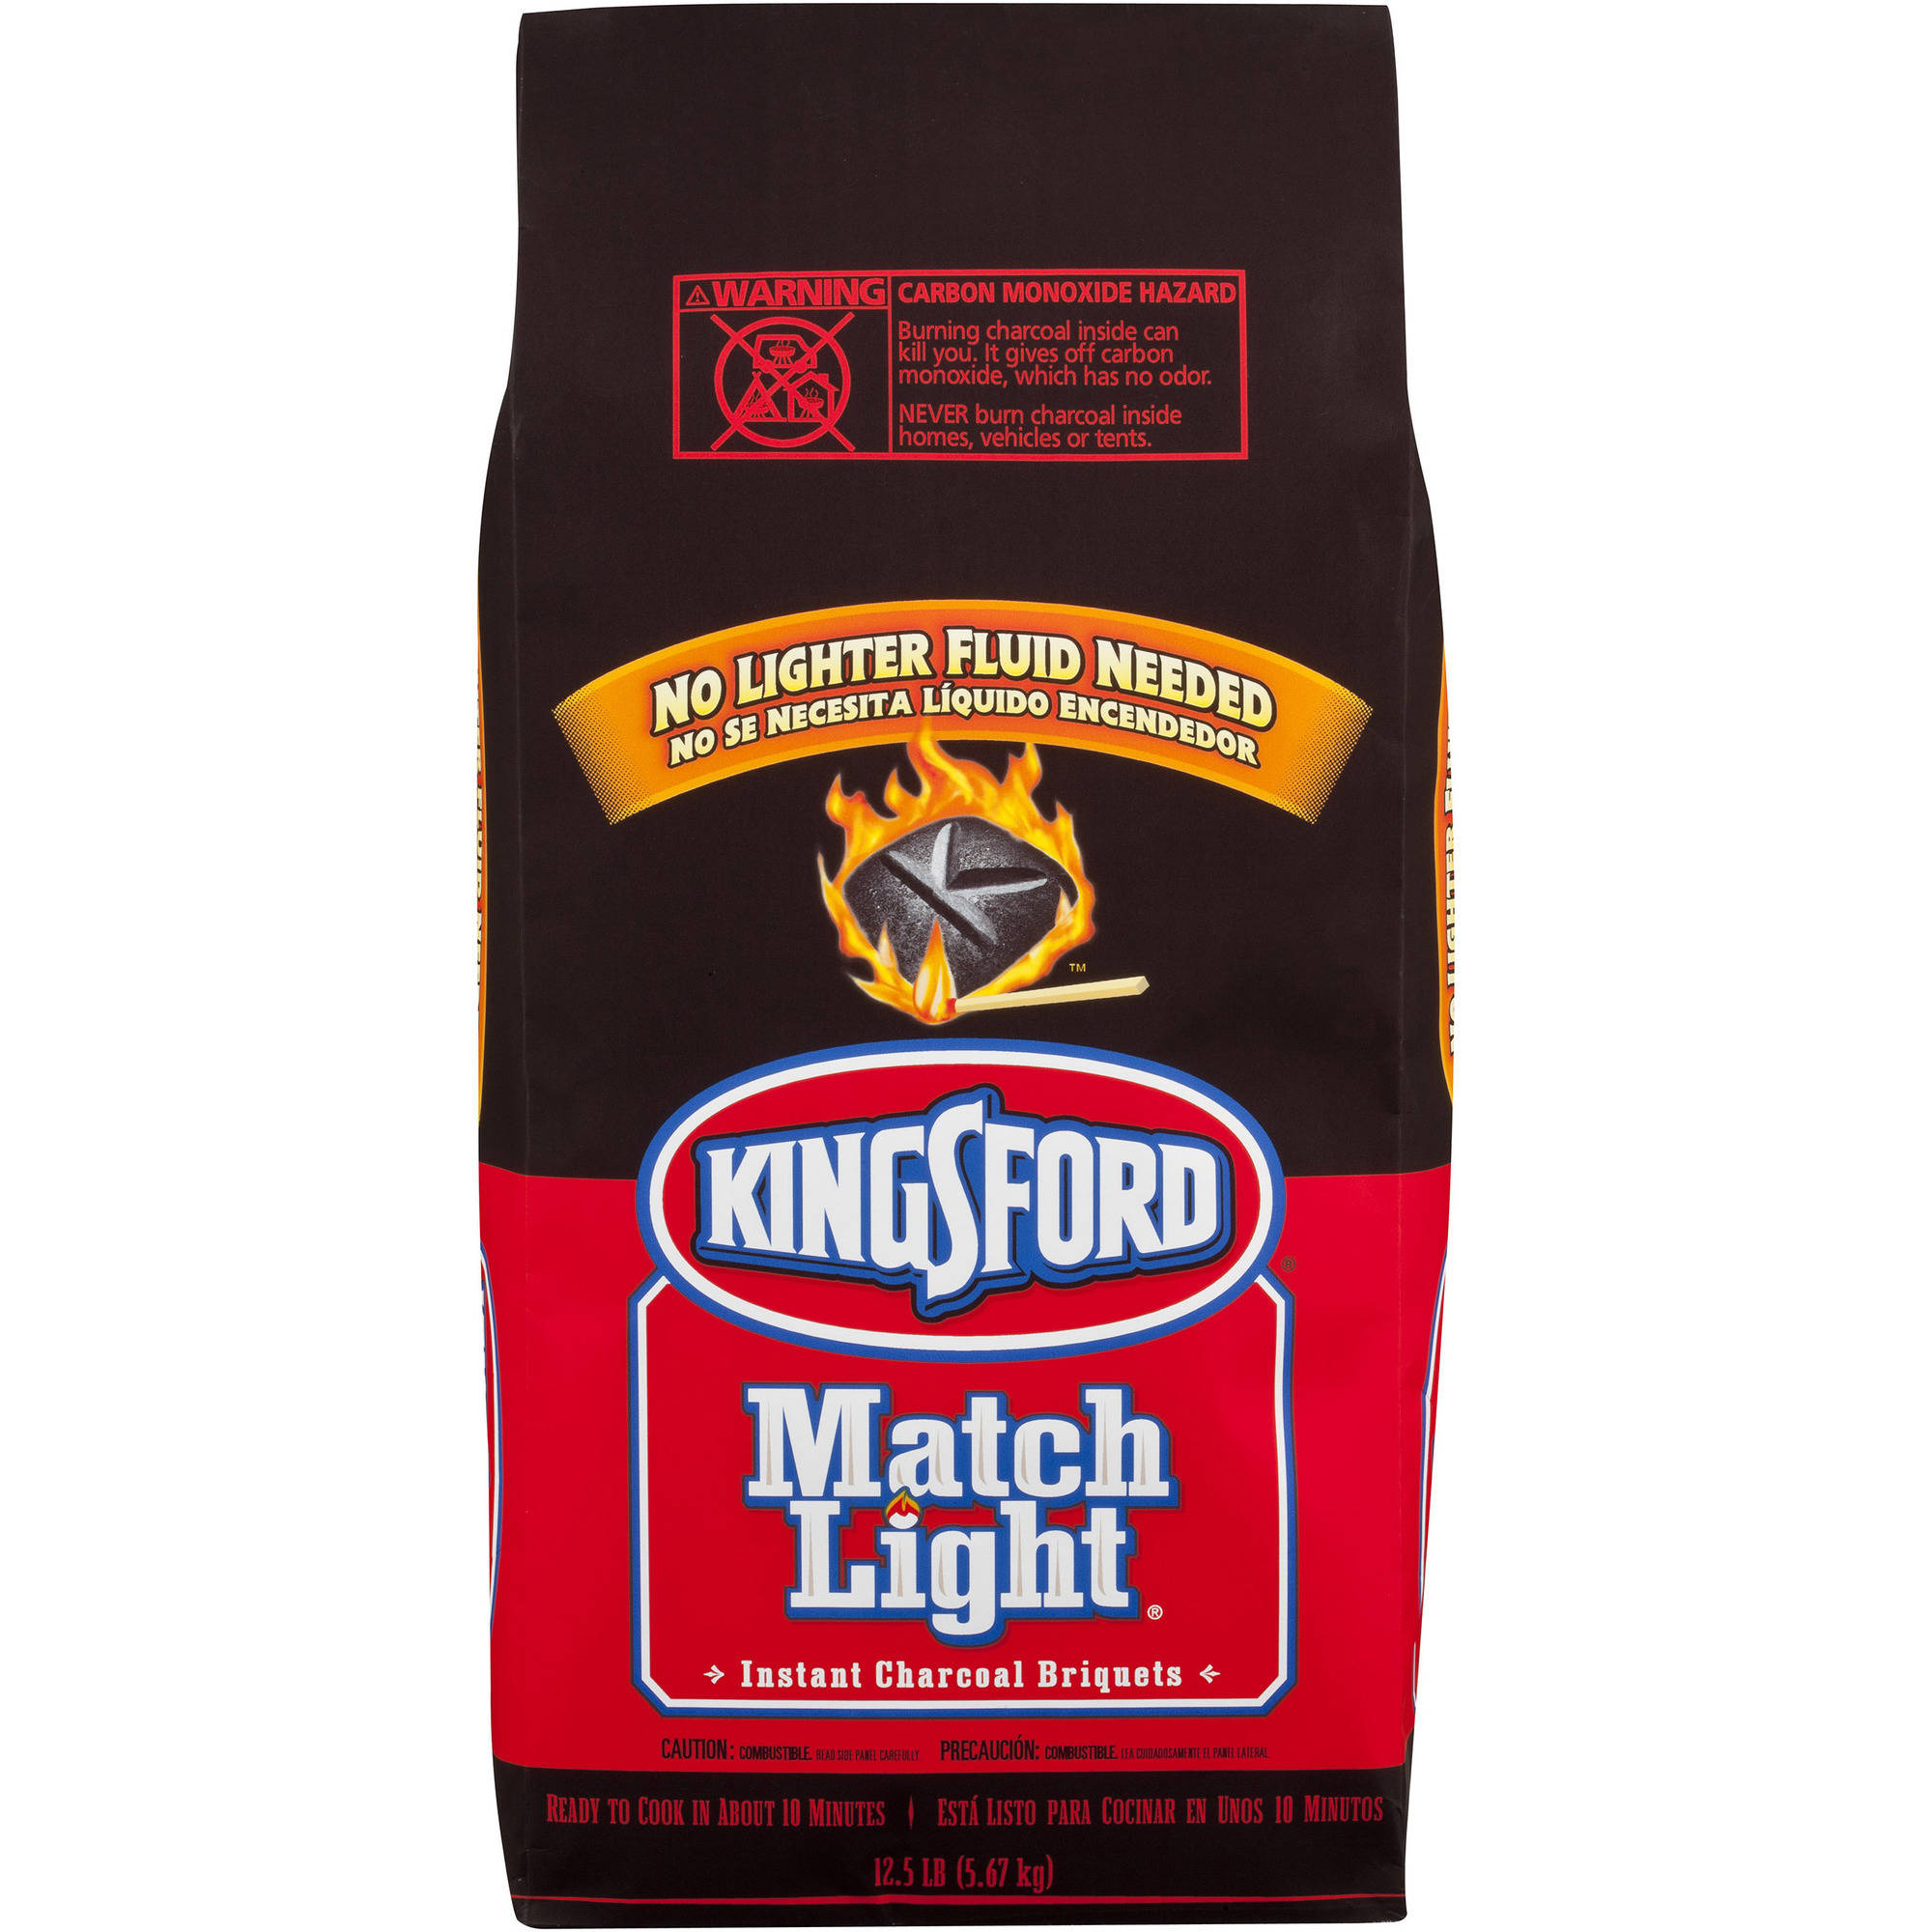 kingsford charcoal marketing report The consumer shifting trend from charcoal to gas grilling is now the primary threat to kingsford and the charcoal market, and to combat this an action plan includes tight control on pricing, new pro-charcoal advertizing campaigns, and increased partnership with retailers and distributes.